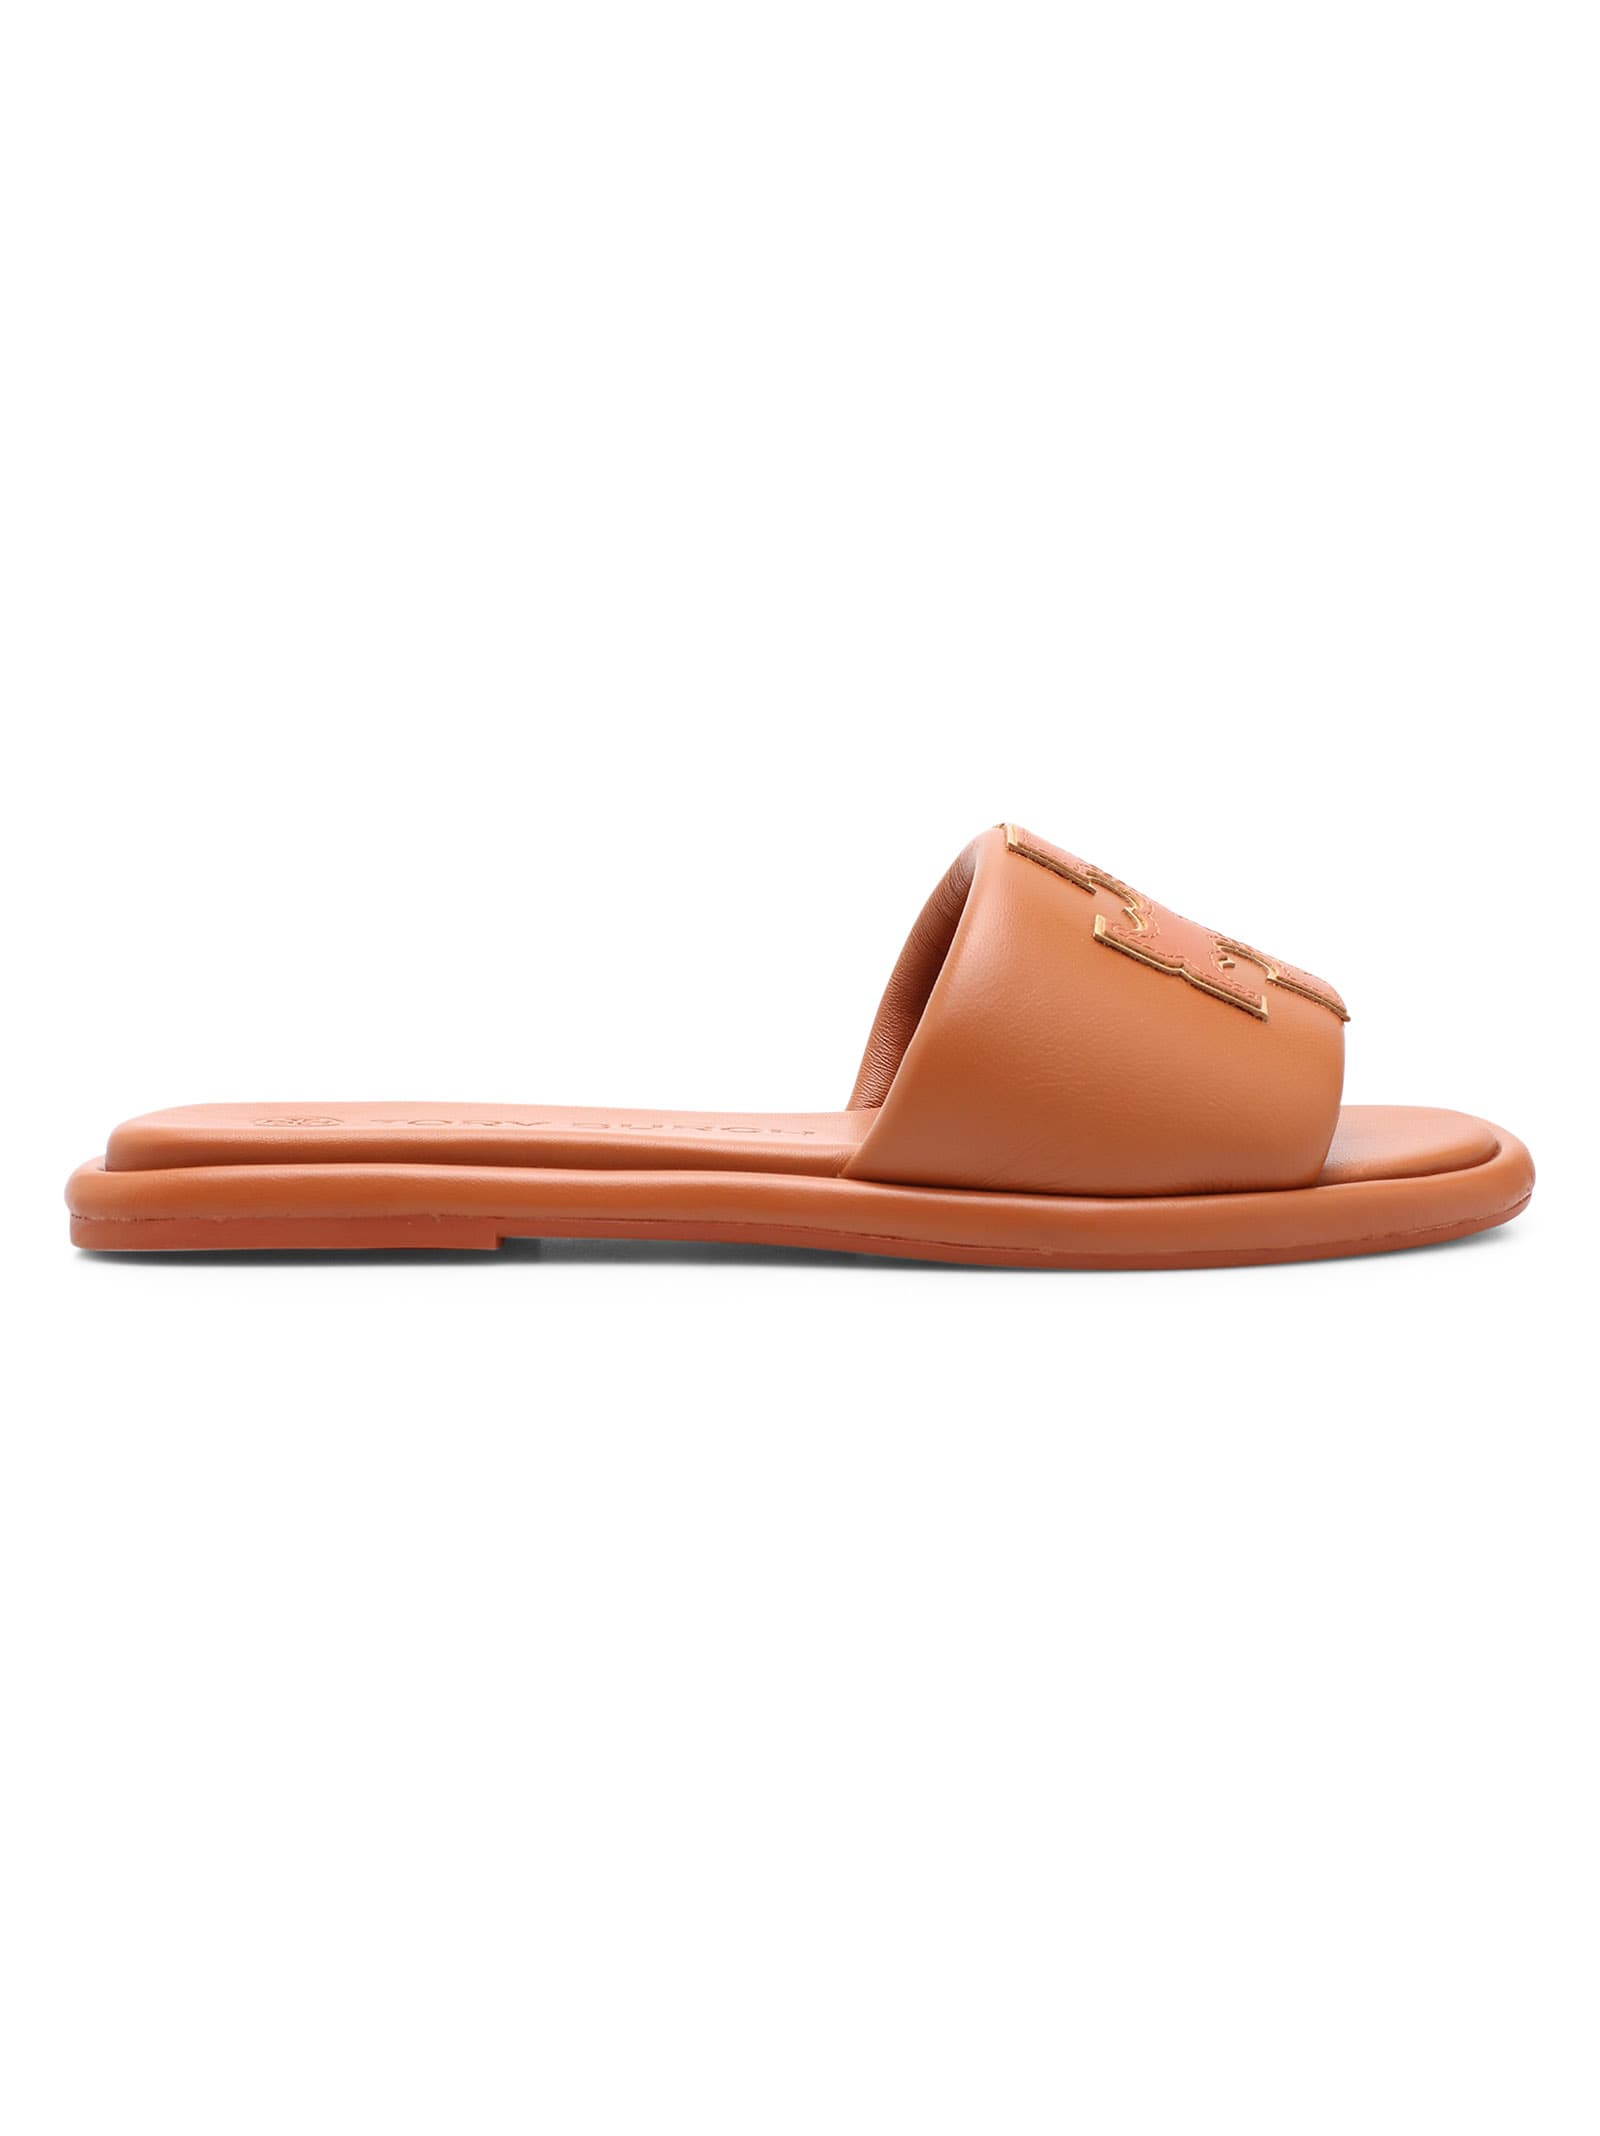 Buy Tory Burch double T Leather Flat Shoes online, shop Tory Burch shoes with free shipping